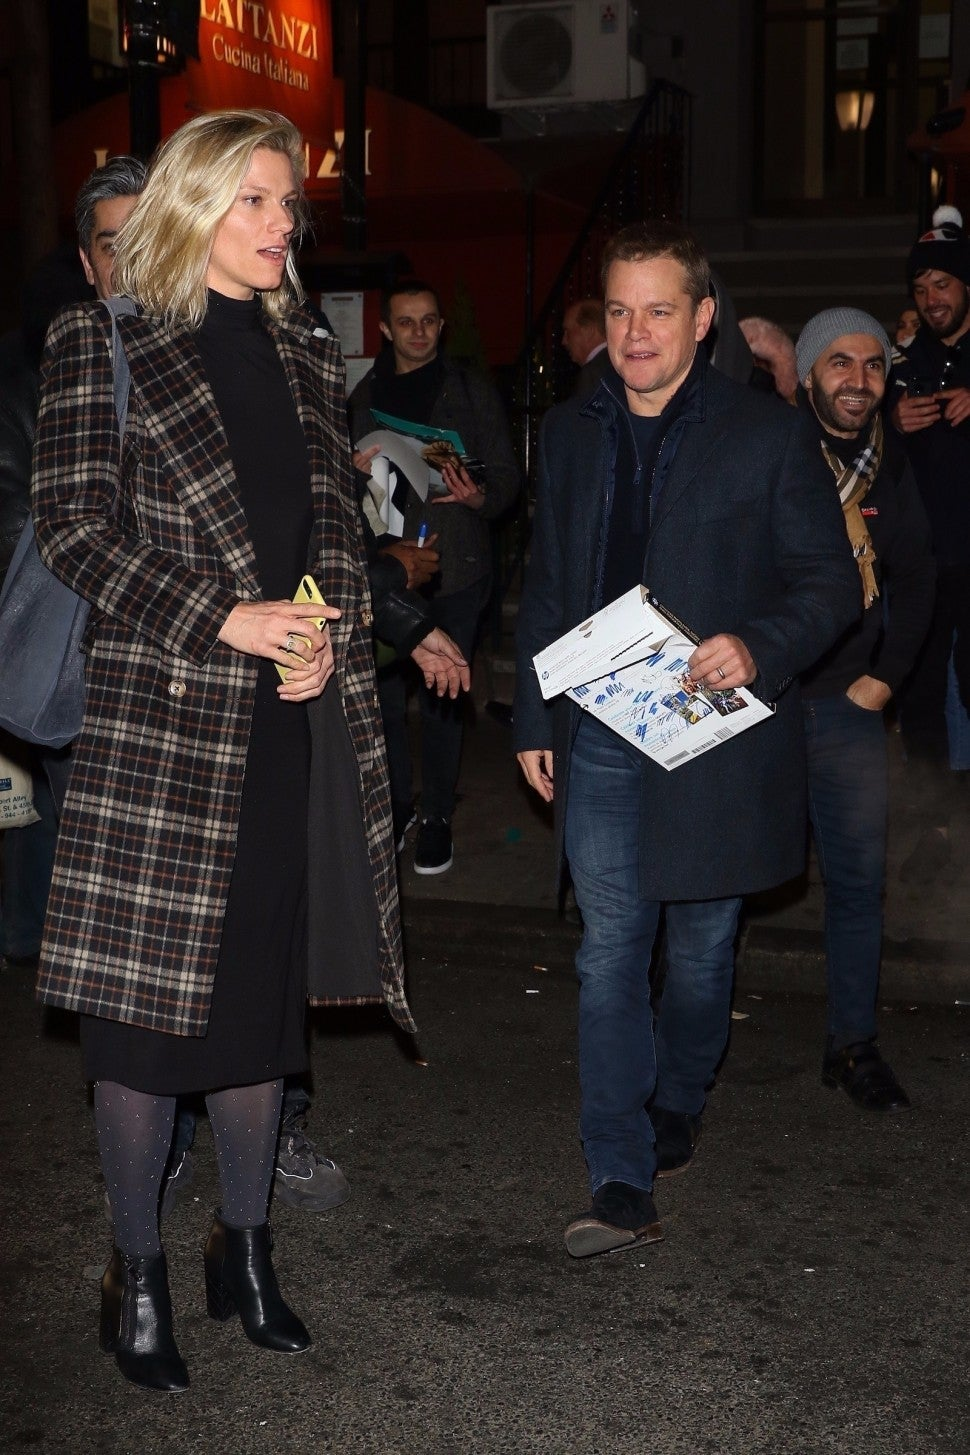 Matt Damon was spotted with Ben Affleck's ex, Saturday Night Live producer Lindsay Shookus, as they leave a SNL power dinner at Lattanzi Restaurant in New York.